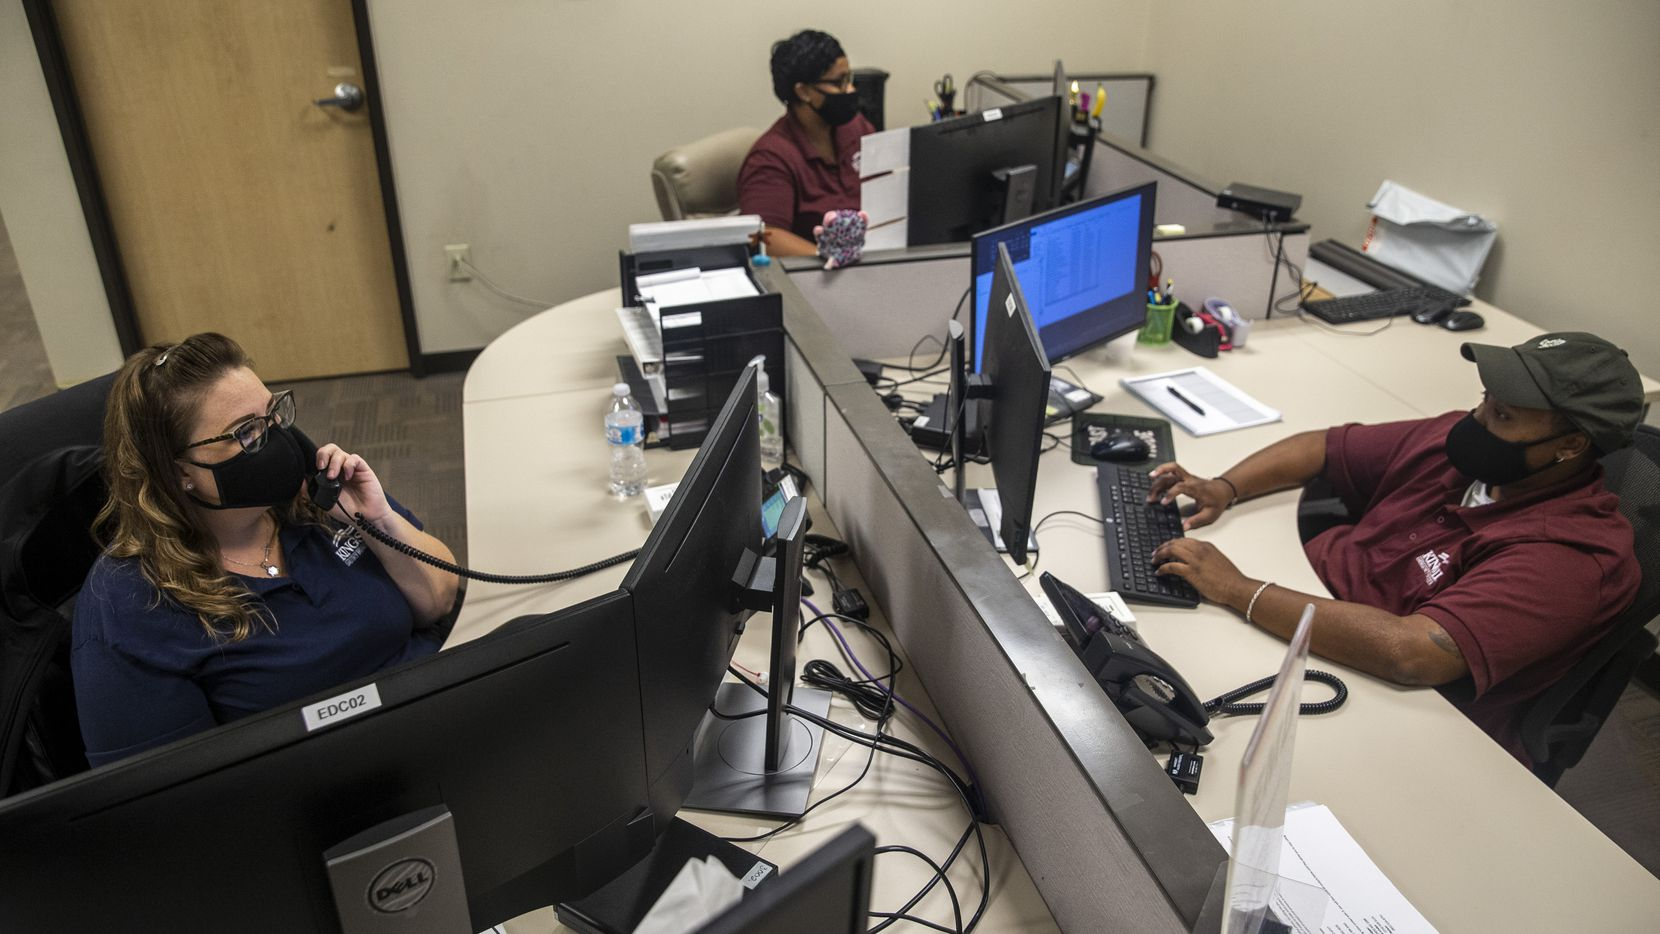 From left, clockwise, advanced emergency medical dispatchers Shayna Haden, Ronda Norsworthy, and Marshawn London work at the Kings III Emergency Communications call center in Coppell on Sept. 3.